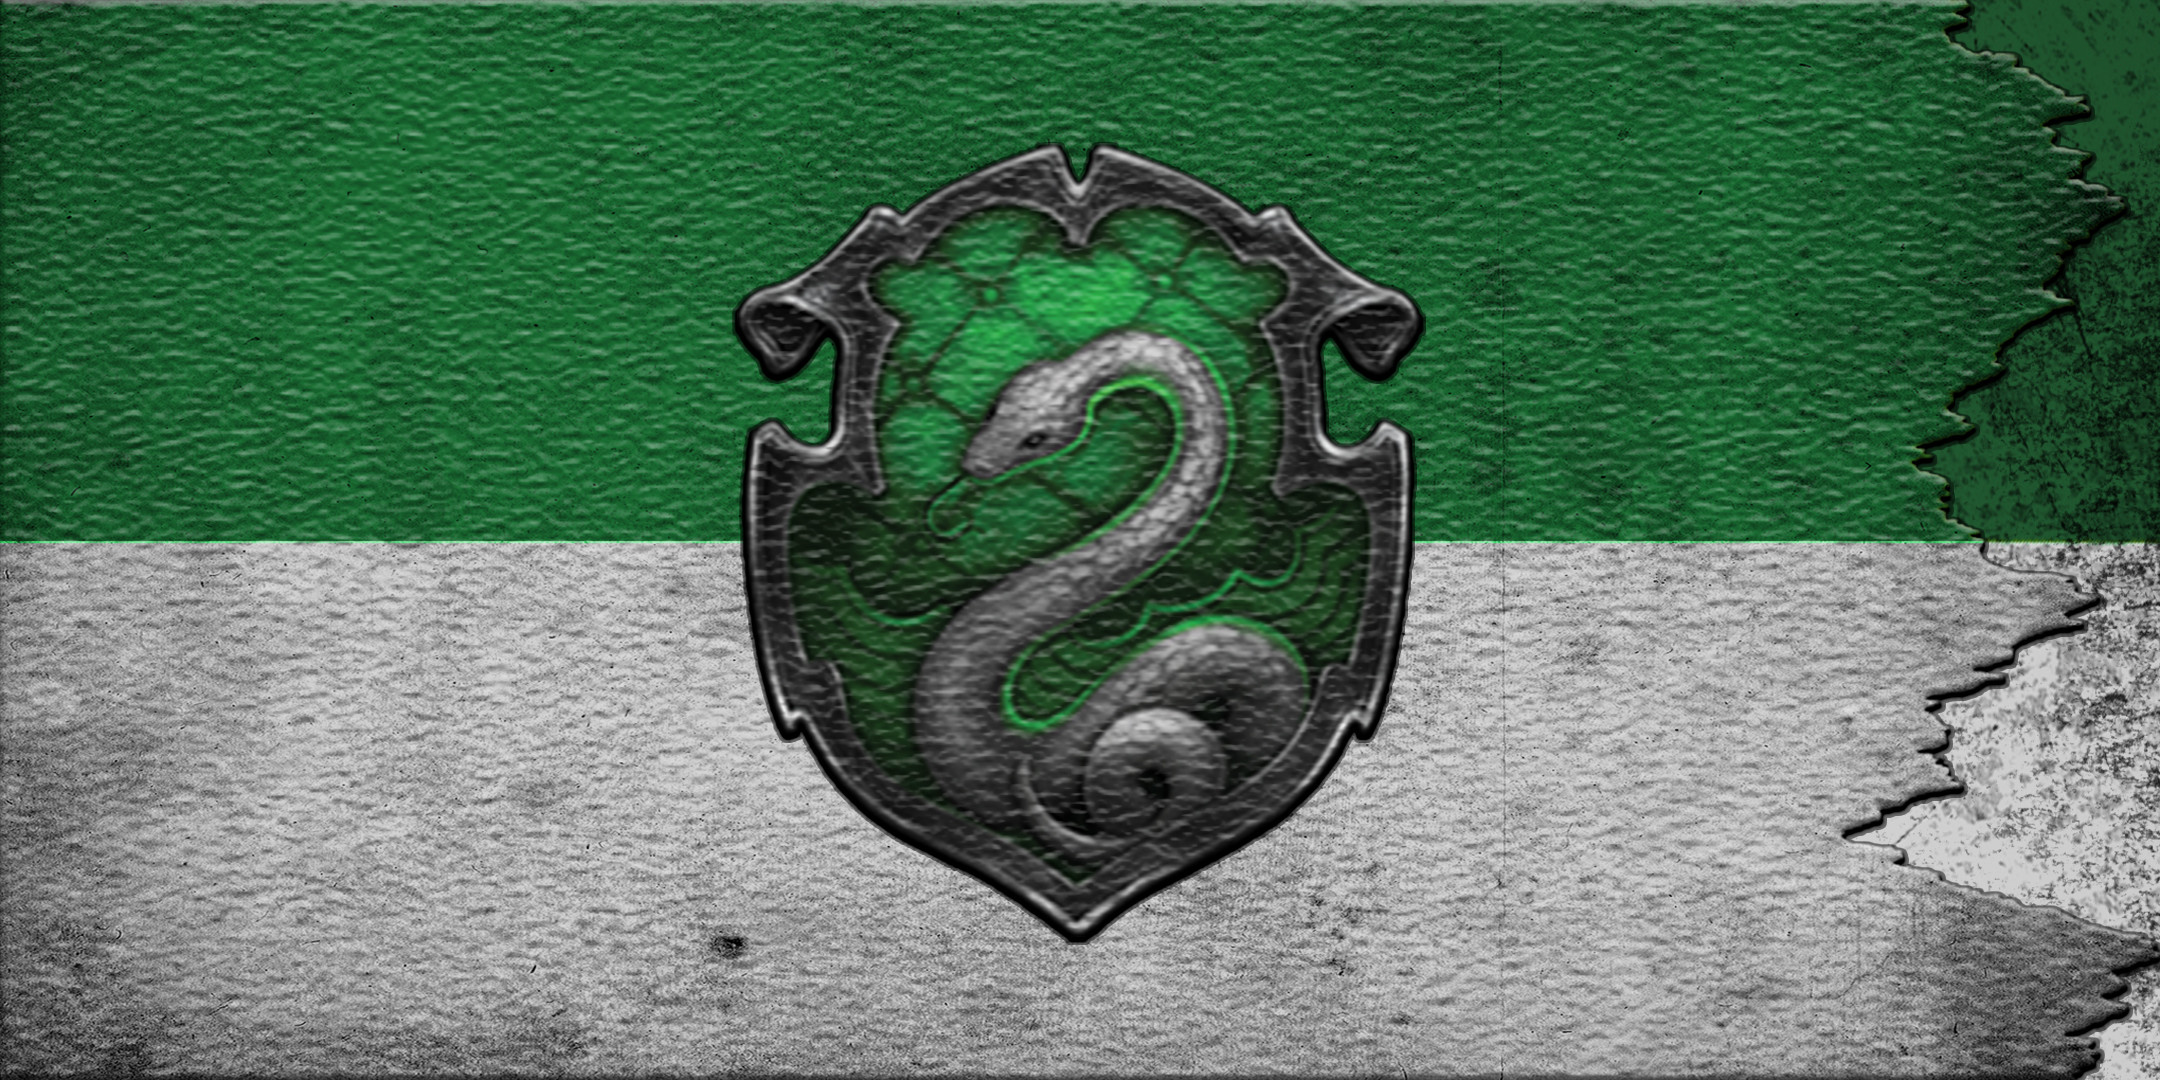 Res: 2160x1080, Slytherin wallpaper by Filonoe